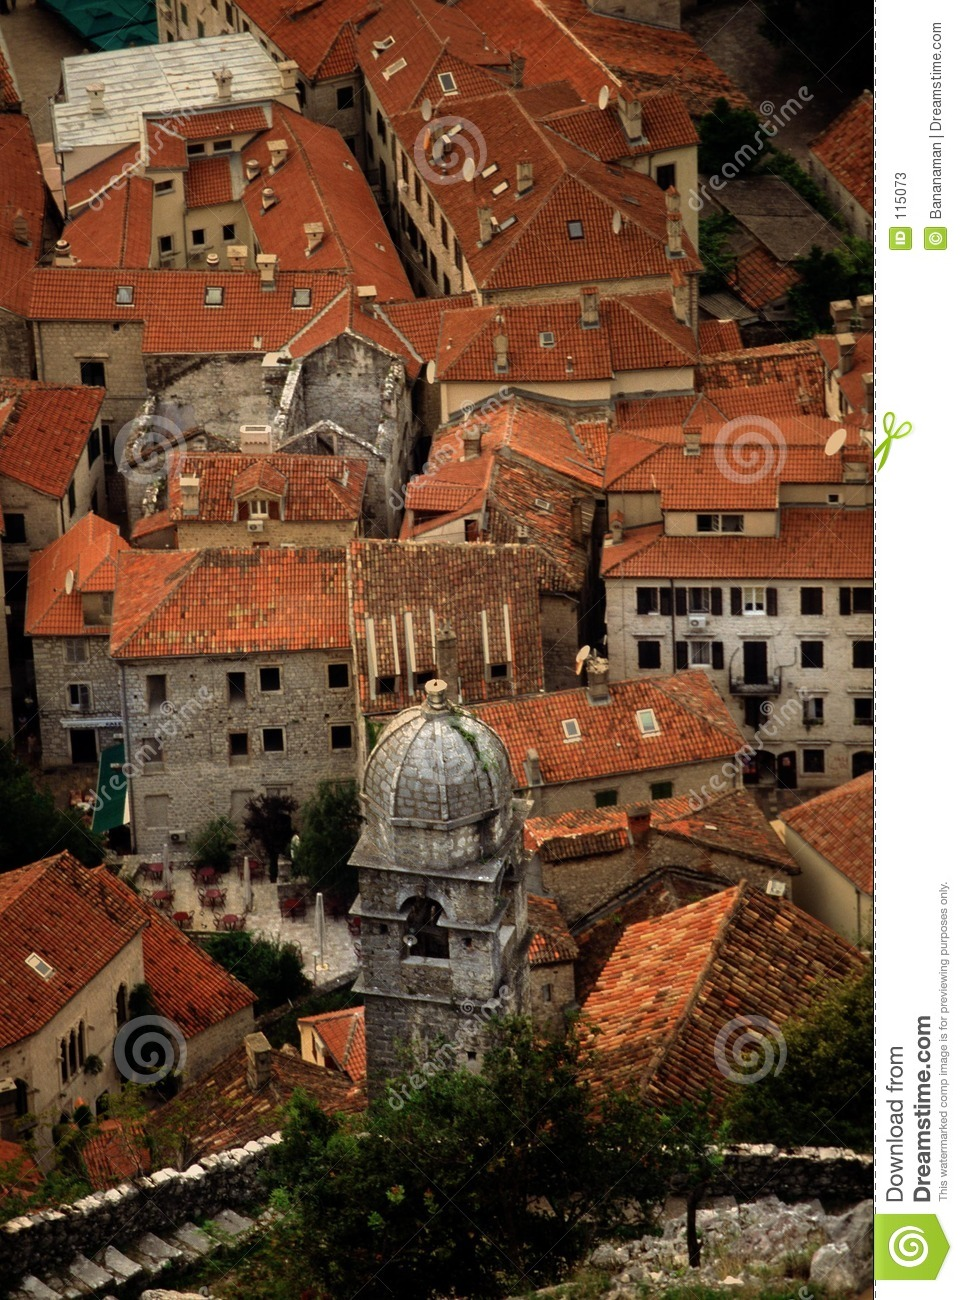 Rote roofed Stadt